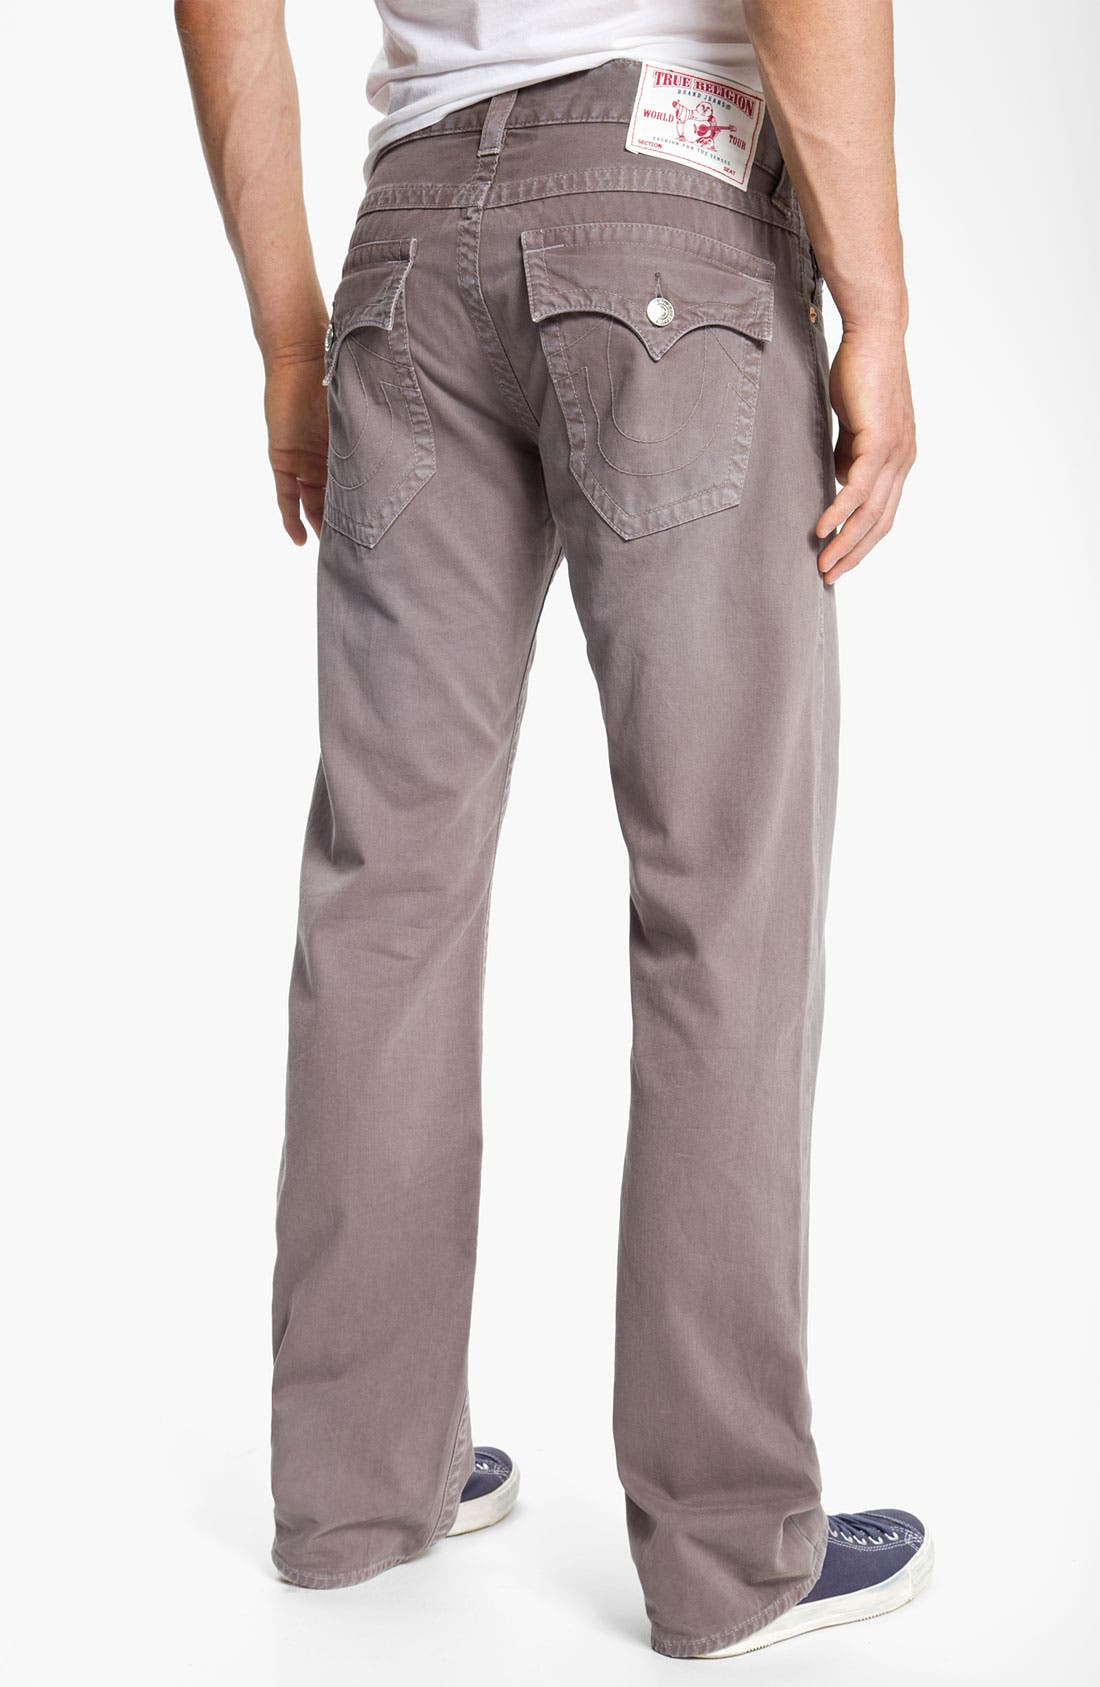 Alternate Image 1 Selected - True Religion Brand Jeans 'Ricky' Straight Leg Cotton Twill Pants